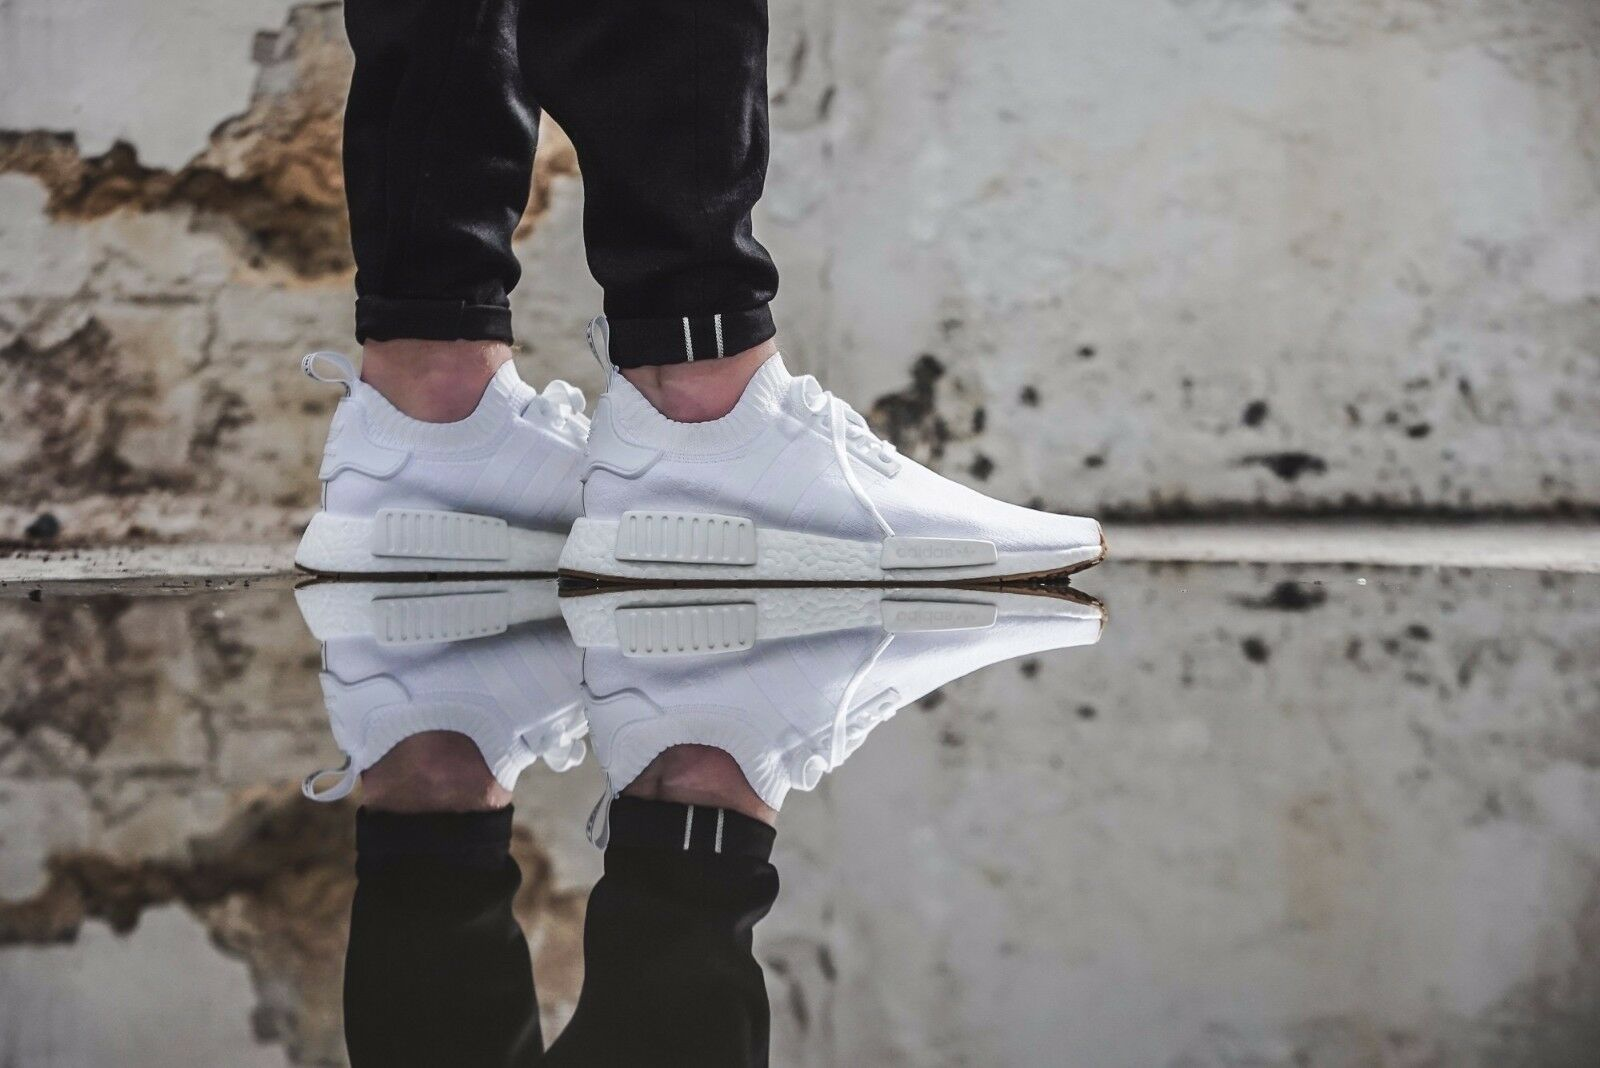 Adidas nmd r1 13,5 pk dimensioni 13,5 r1 gomme bianche.by1888.primeknit.ultra impulso 6cf93c